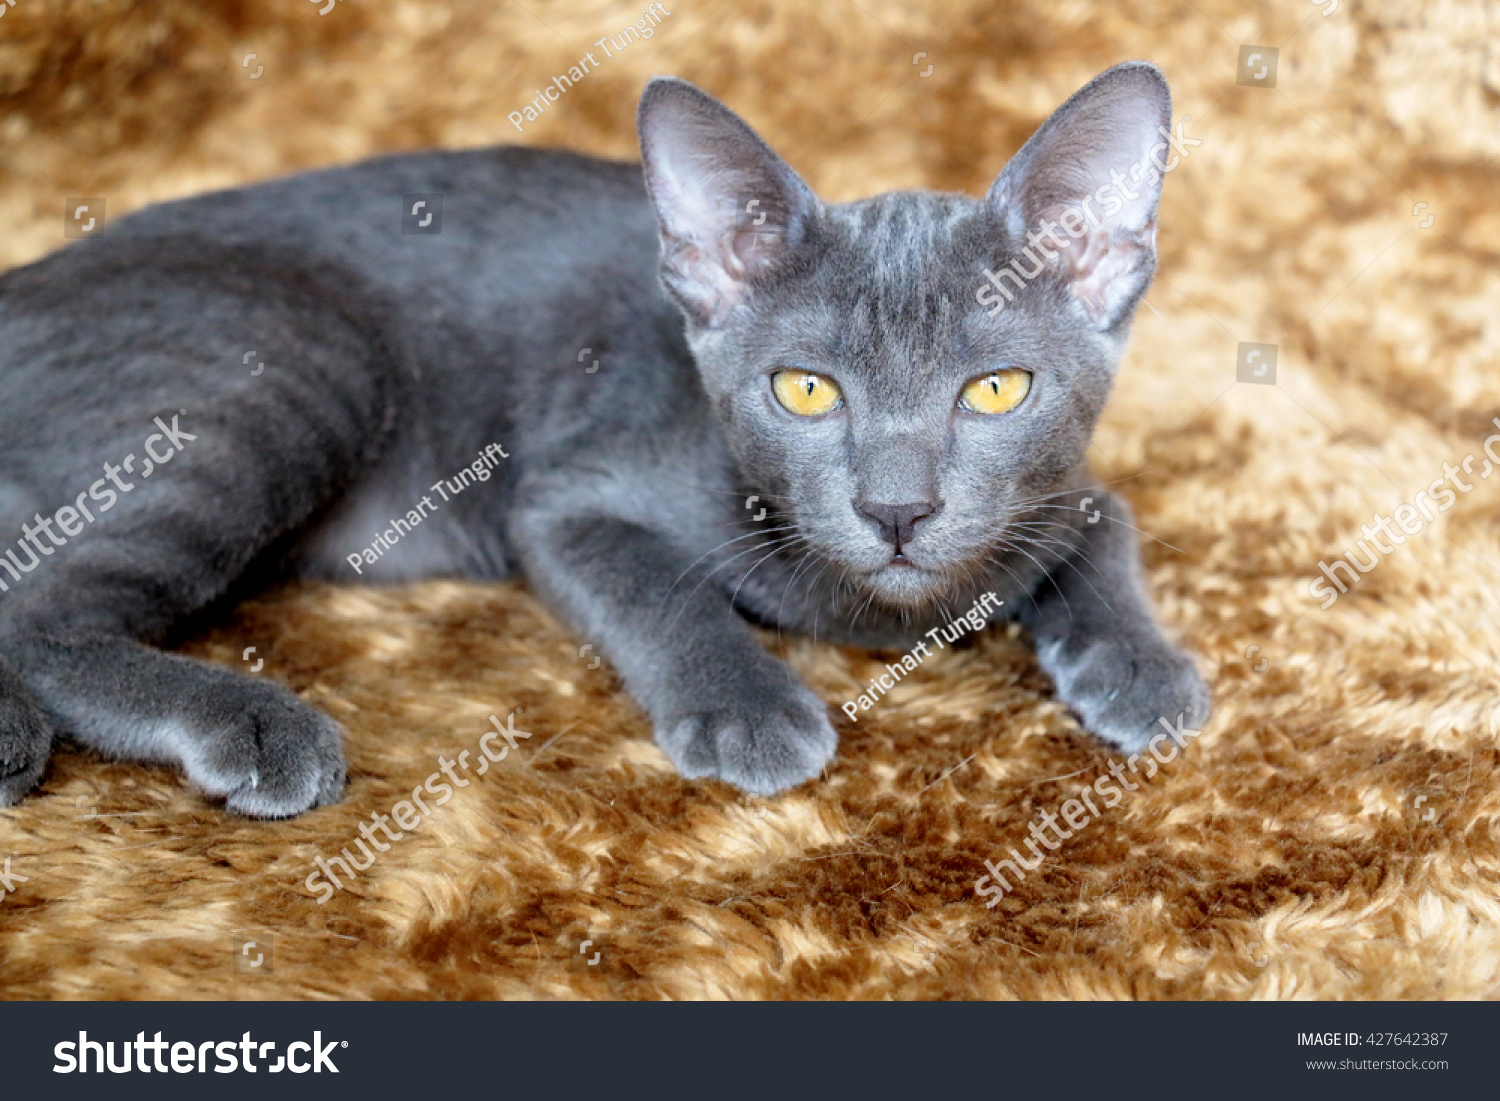 Color of cats fur - Close Up The Korat Kitten Gray Color Cat Look Through The Light And